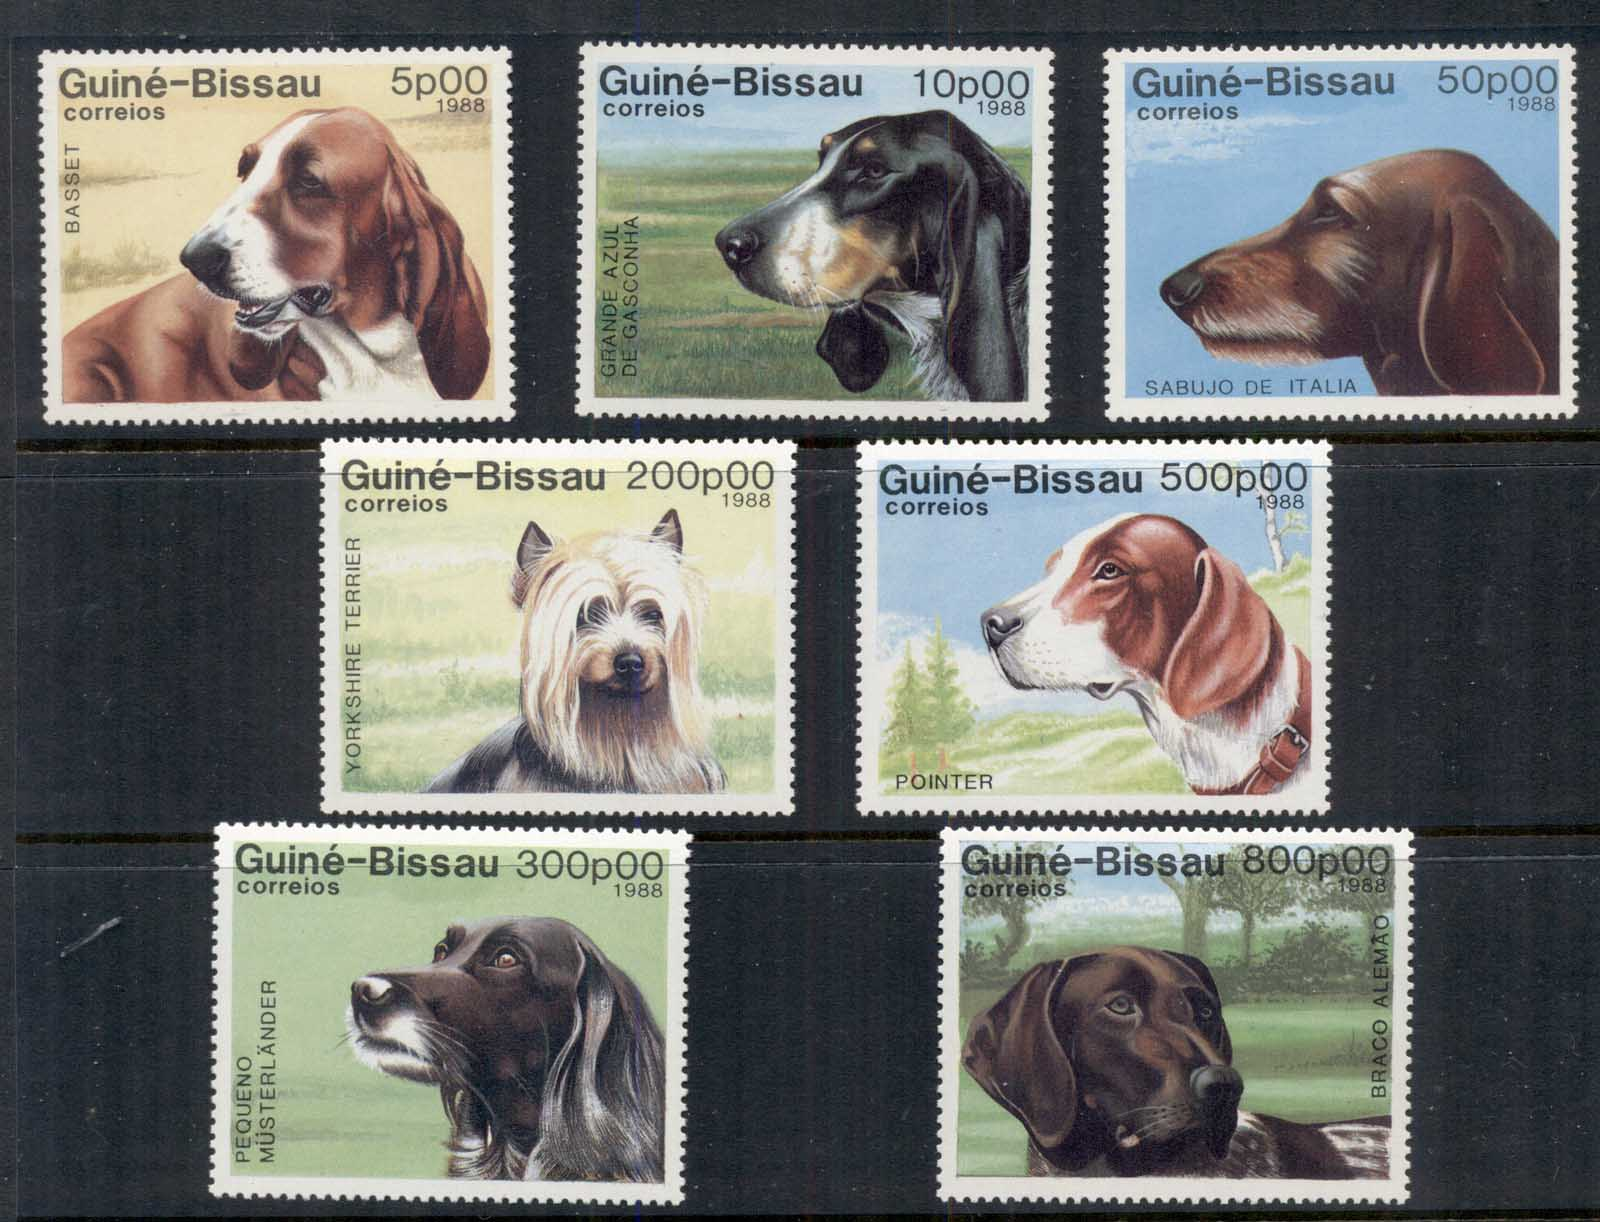 Guinea Bissau 1988 Dogs MUH